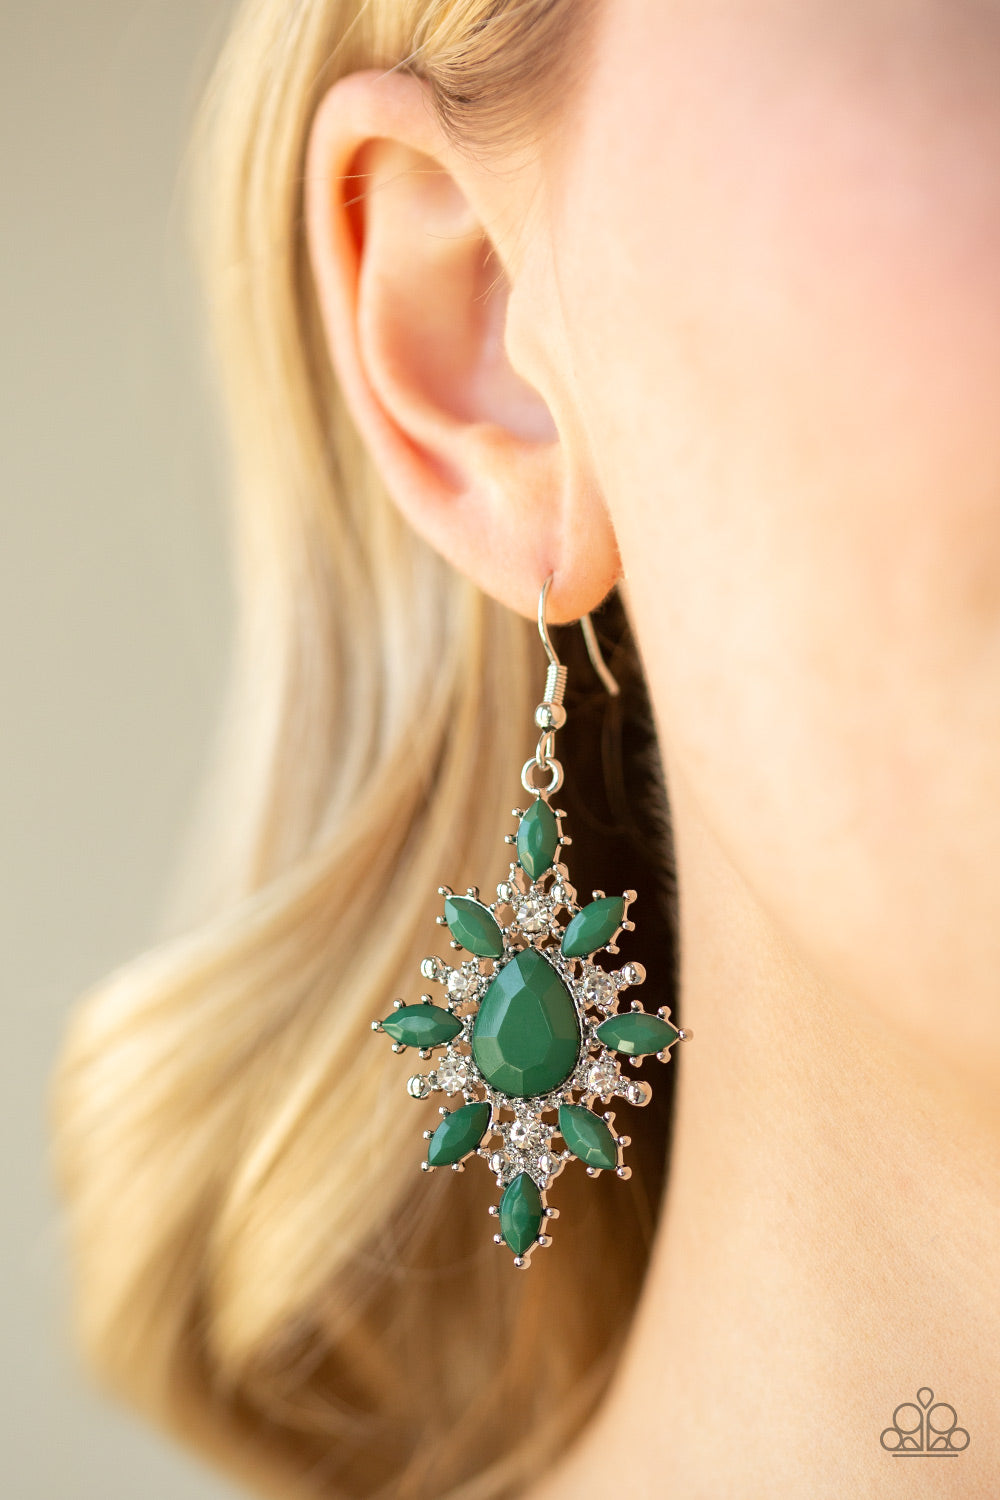 Glamourously Colorful - Green Earrings - SavvyChicksJewelry